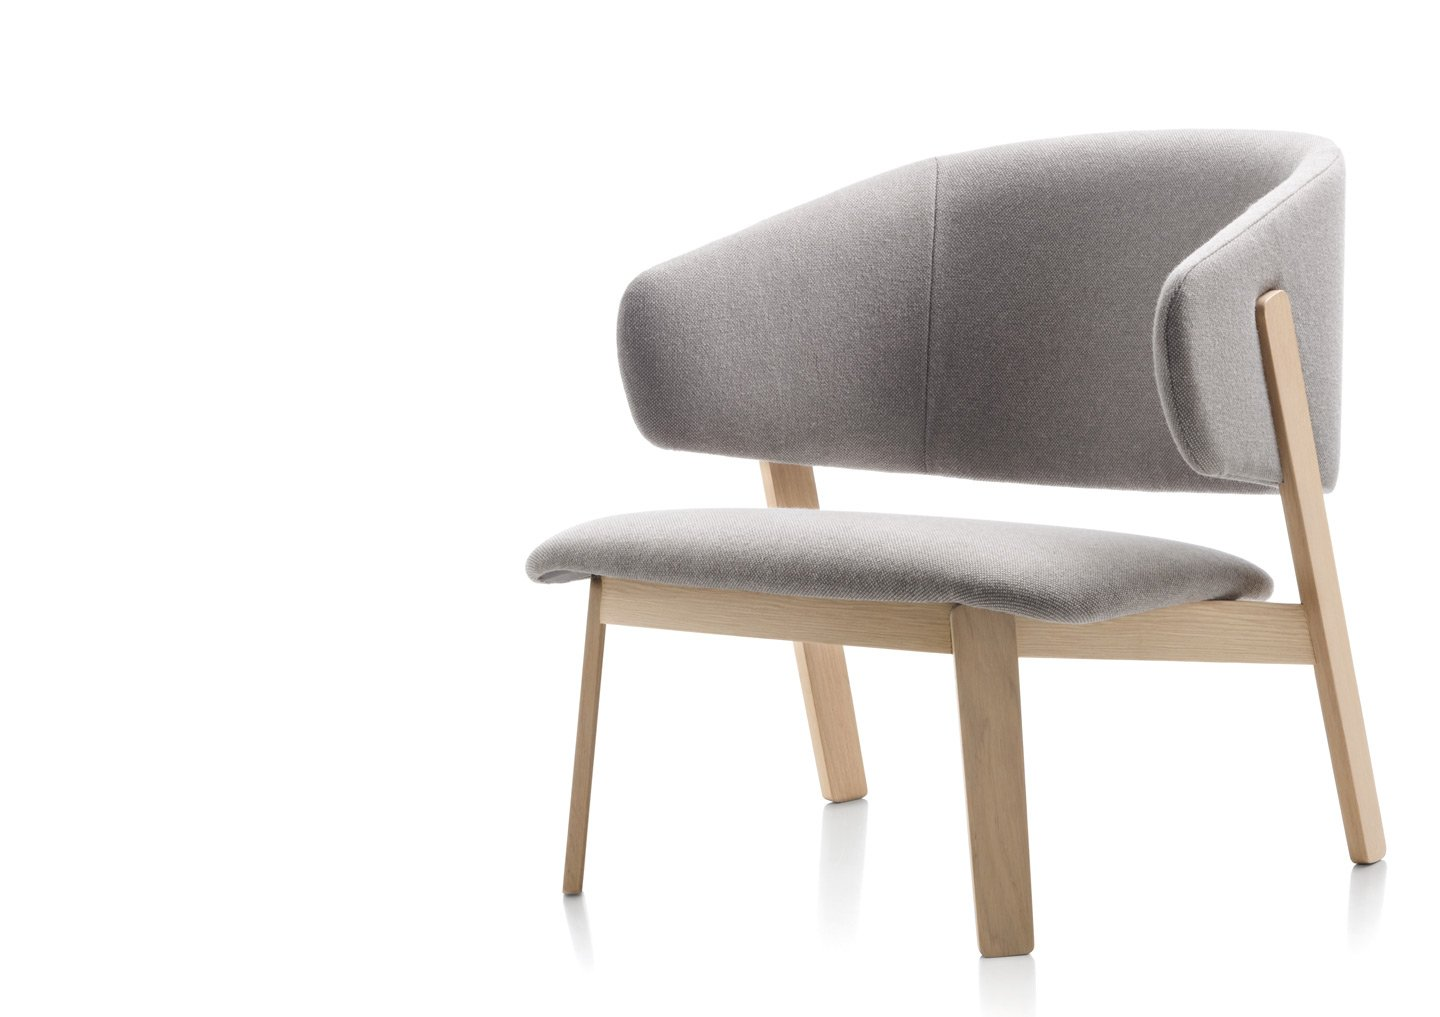 Wolfgang Lounge chair from Fornasarig